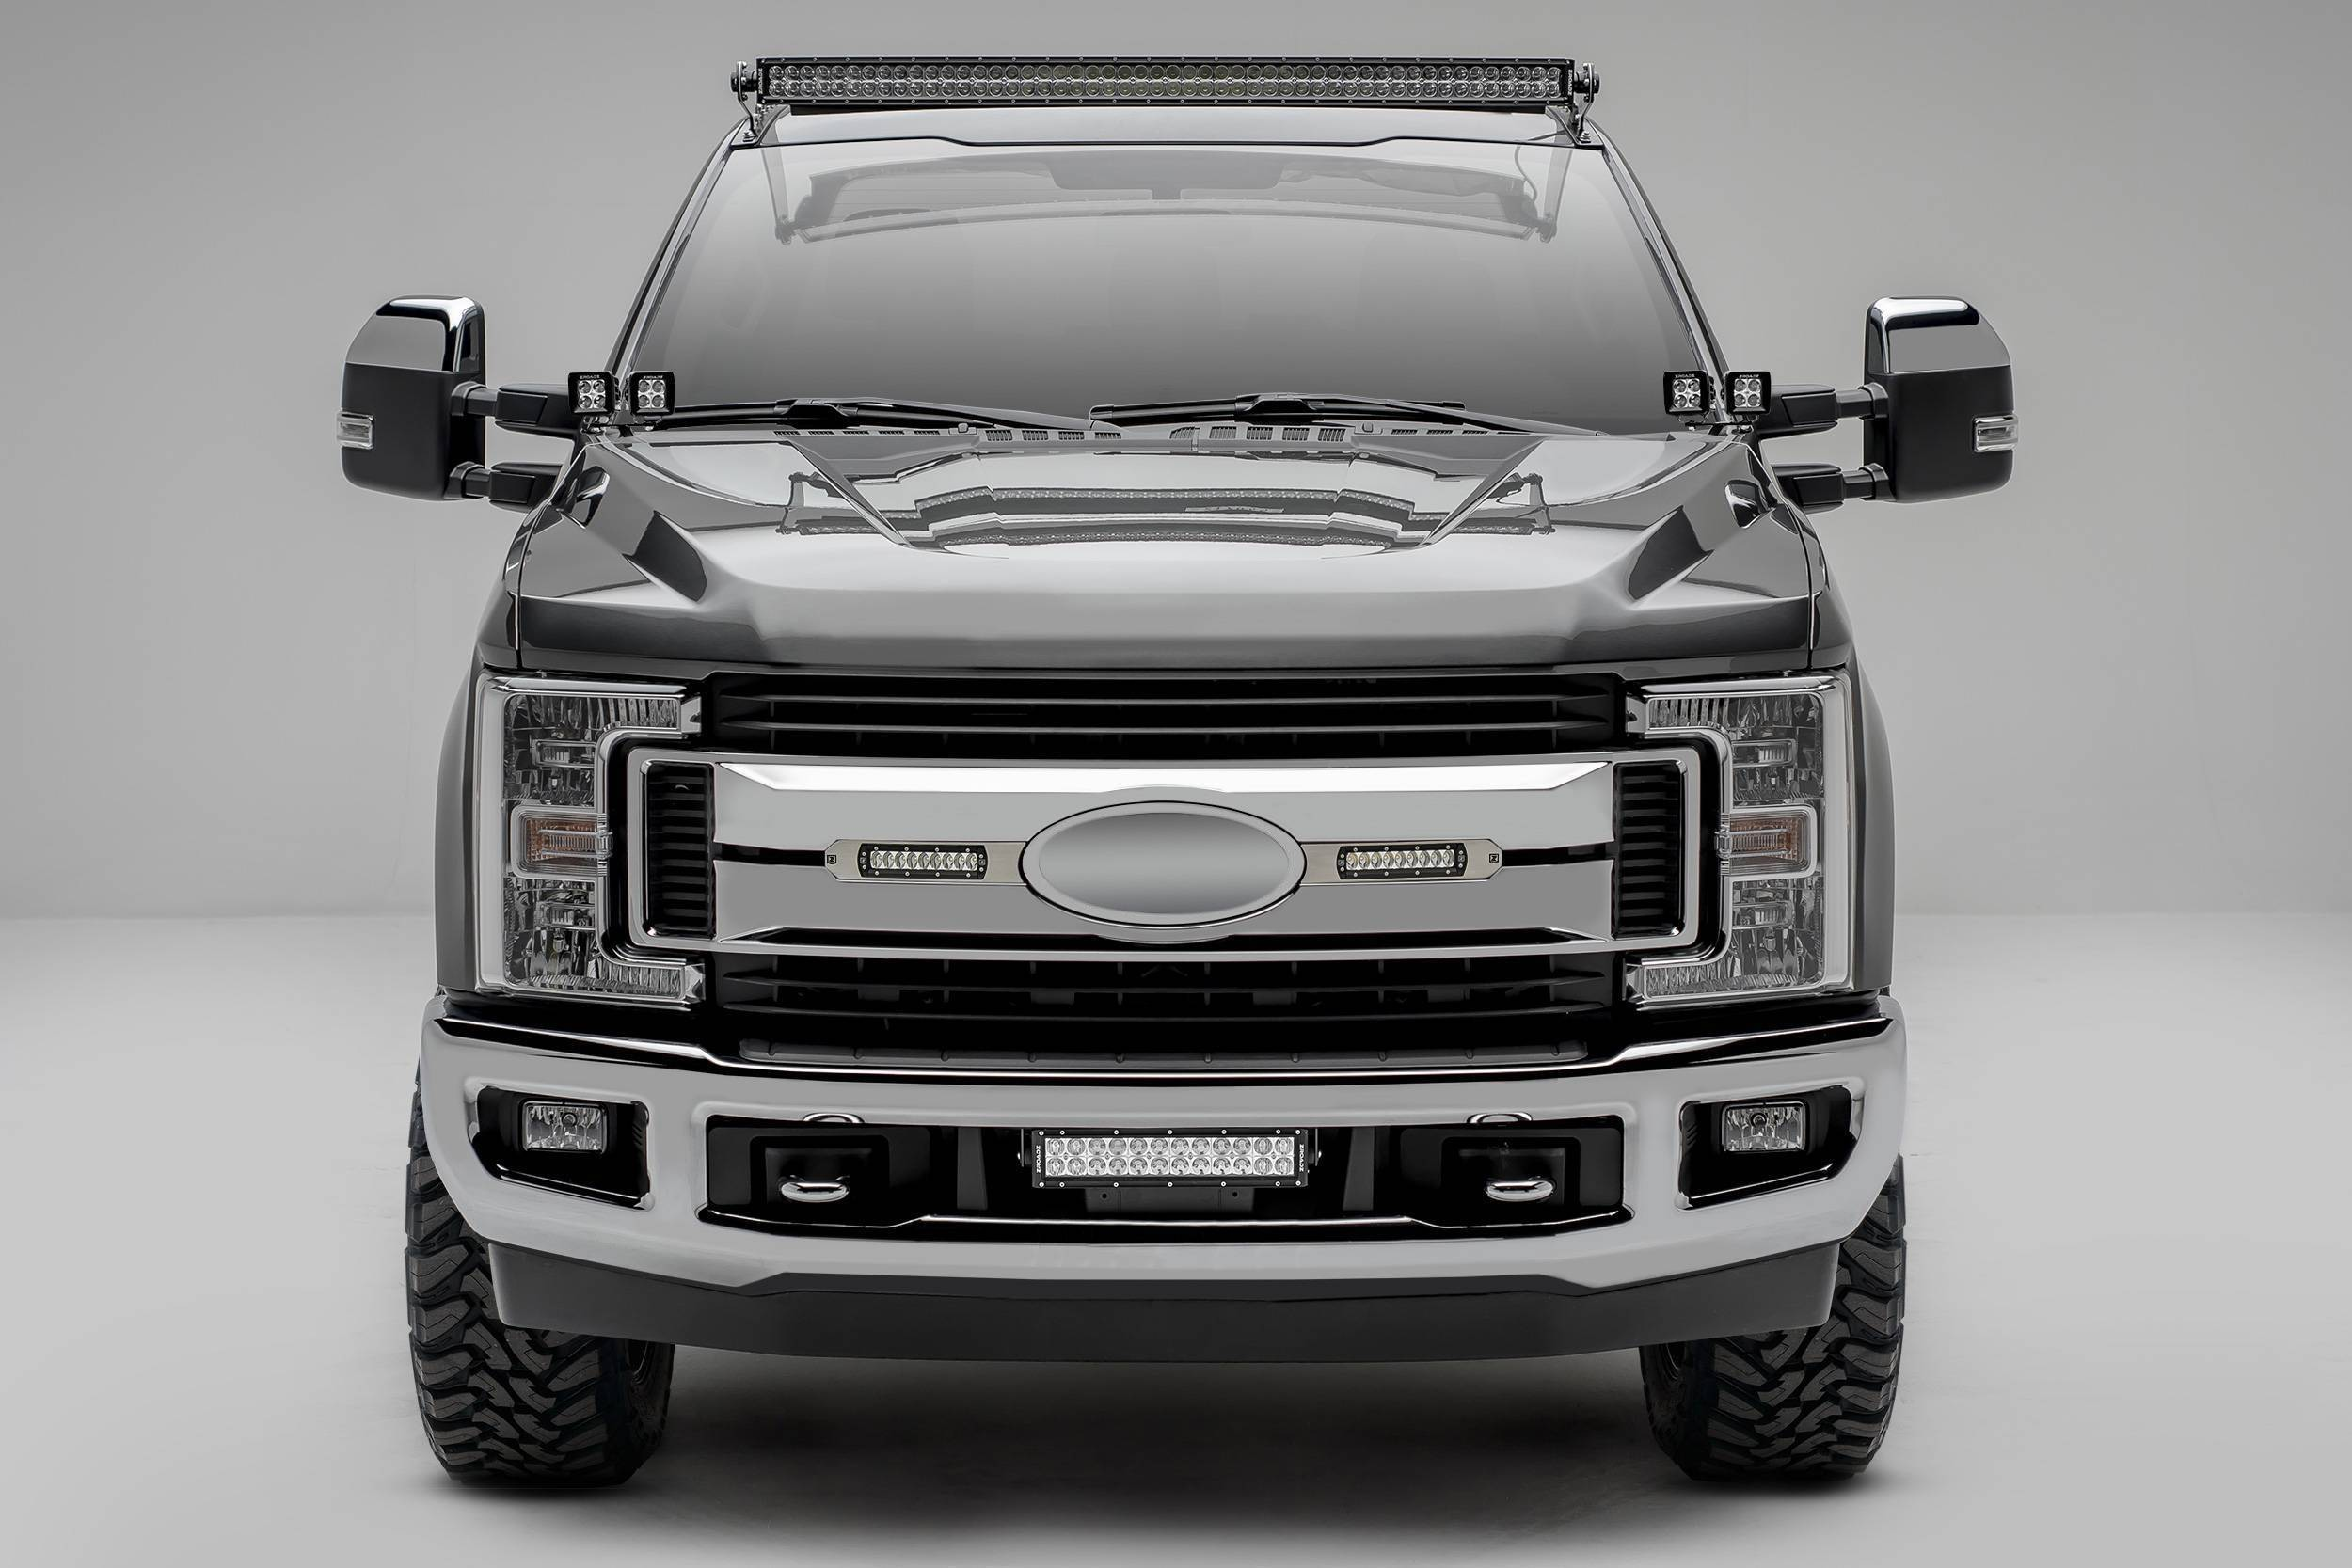 ZROADZ OFF ROAD PRODUCTS - 2017-2019 Ford Super Duty XLT, XL STX OEM Grille LED Kit with (2) 6 Inch LED Straight Single Row Slim Light Bars, Brushed - PN #Z415573-KIT